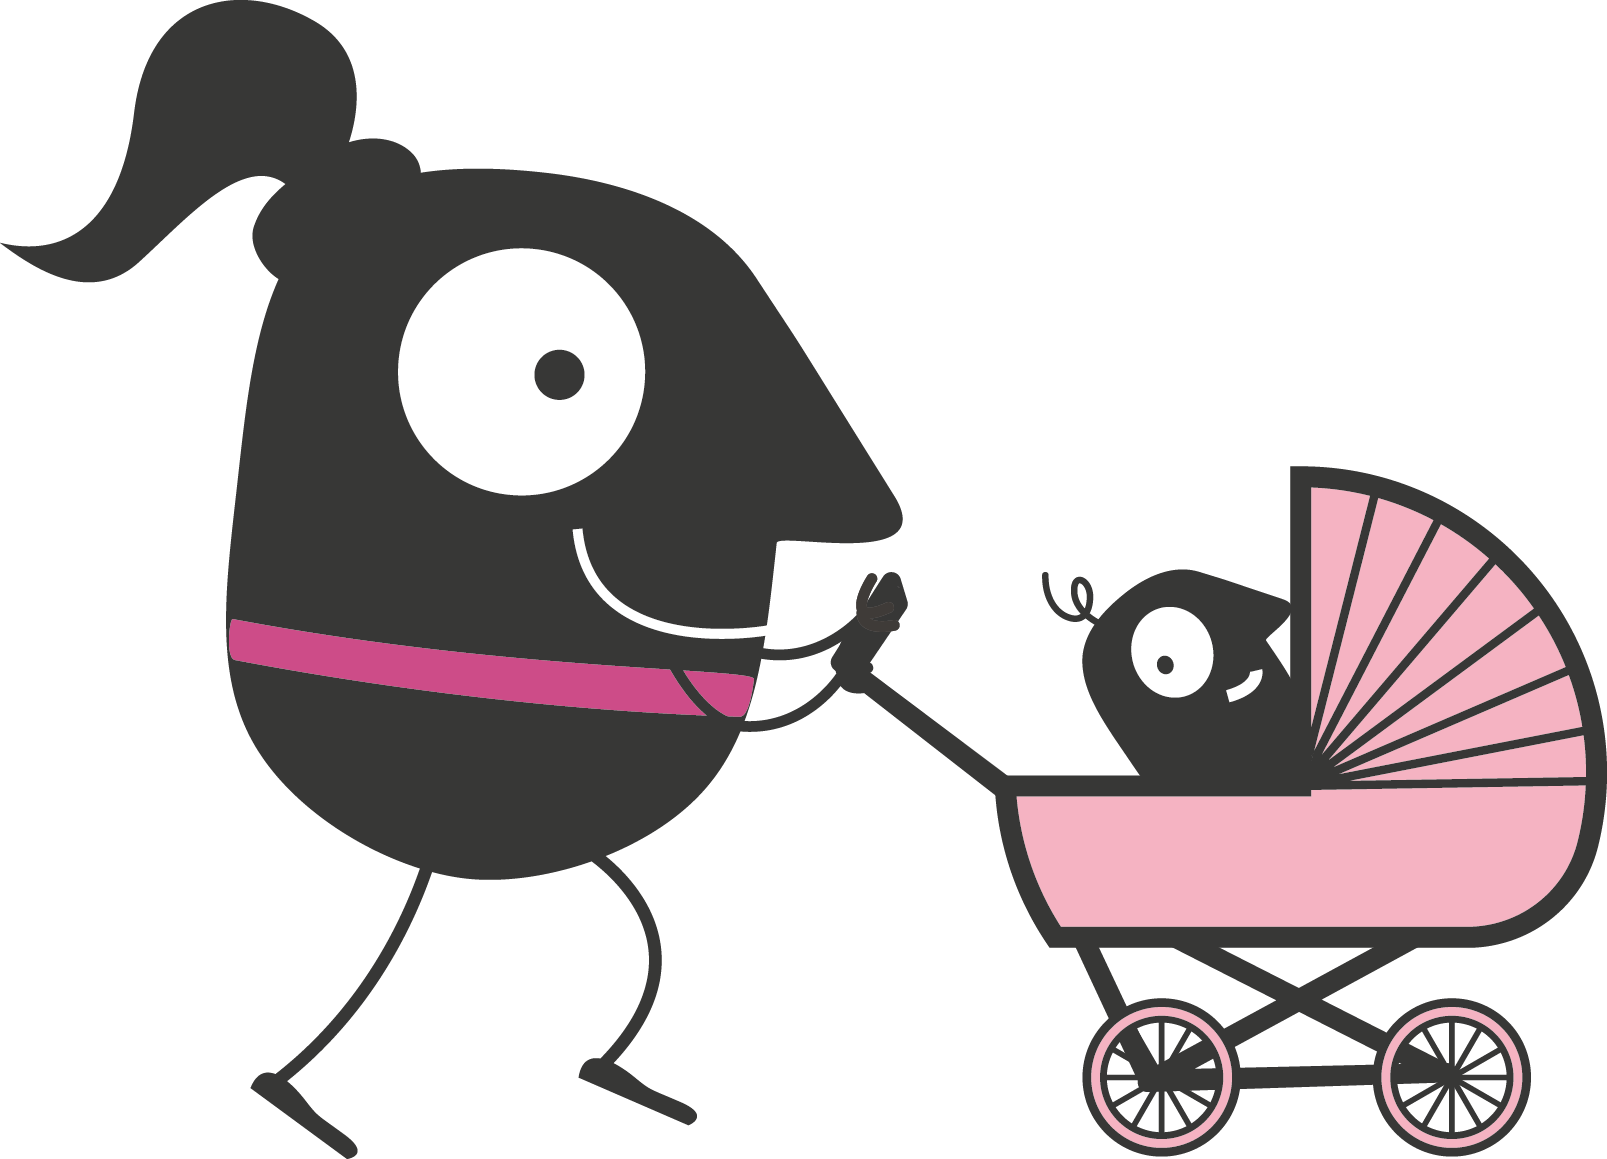 06_EMW_Pedestrian_Female_with_Baby_Carriage.png